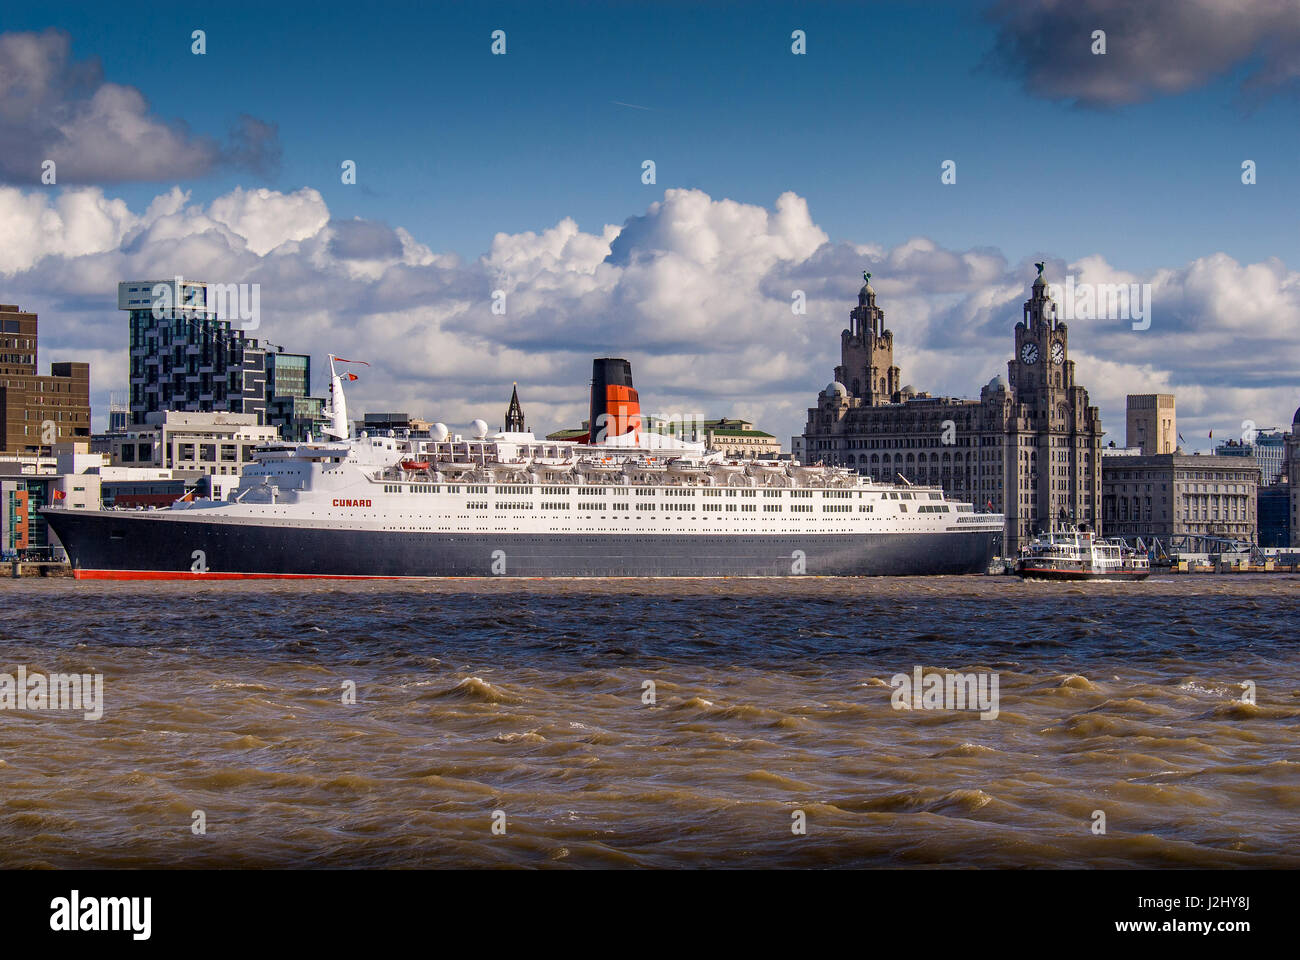 QE2 at Liverpool pierhead. waterfront ferry - Stock Image